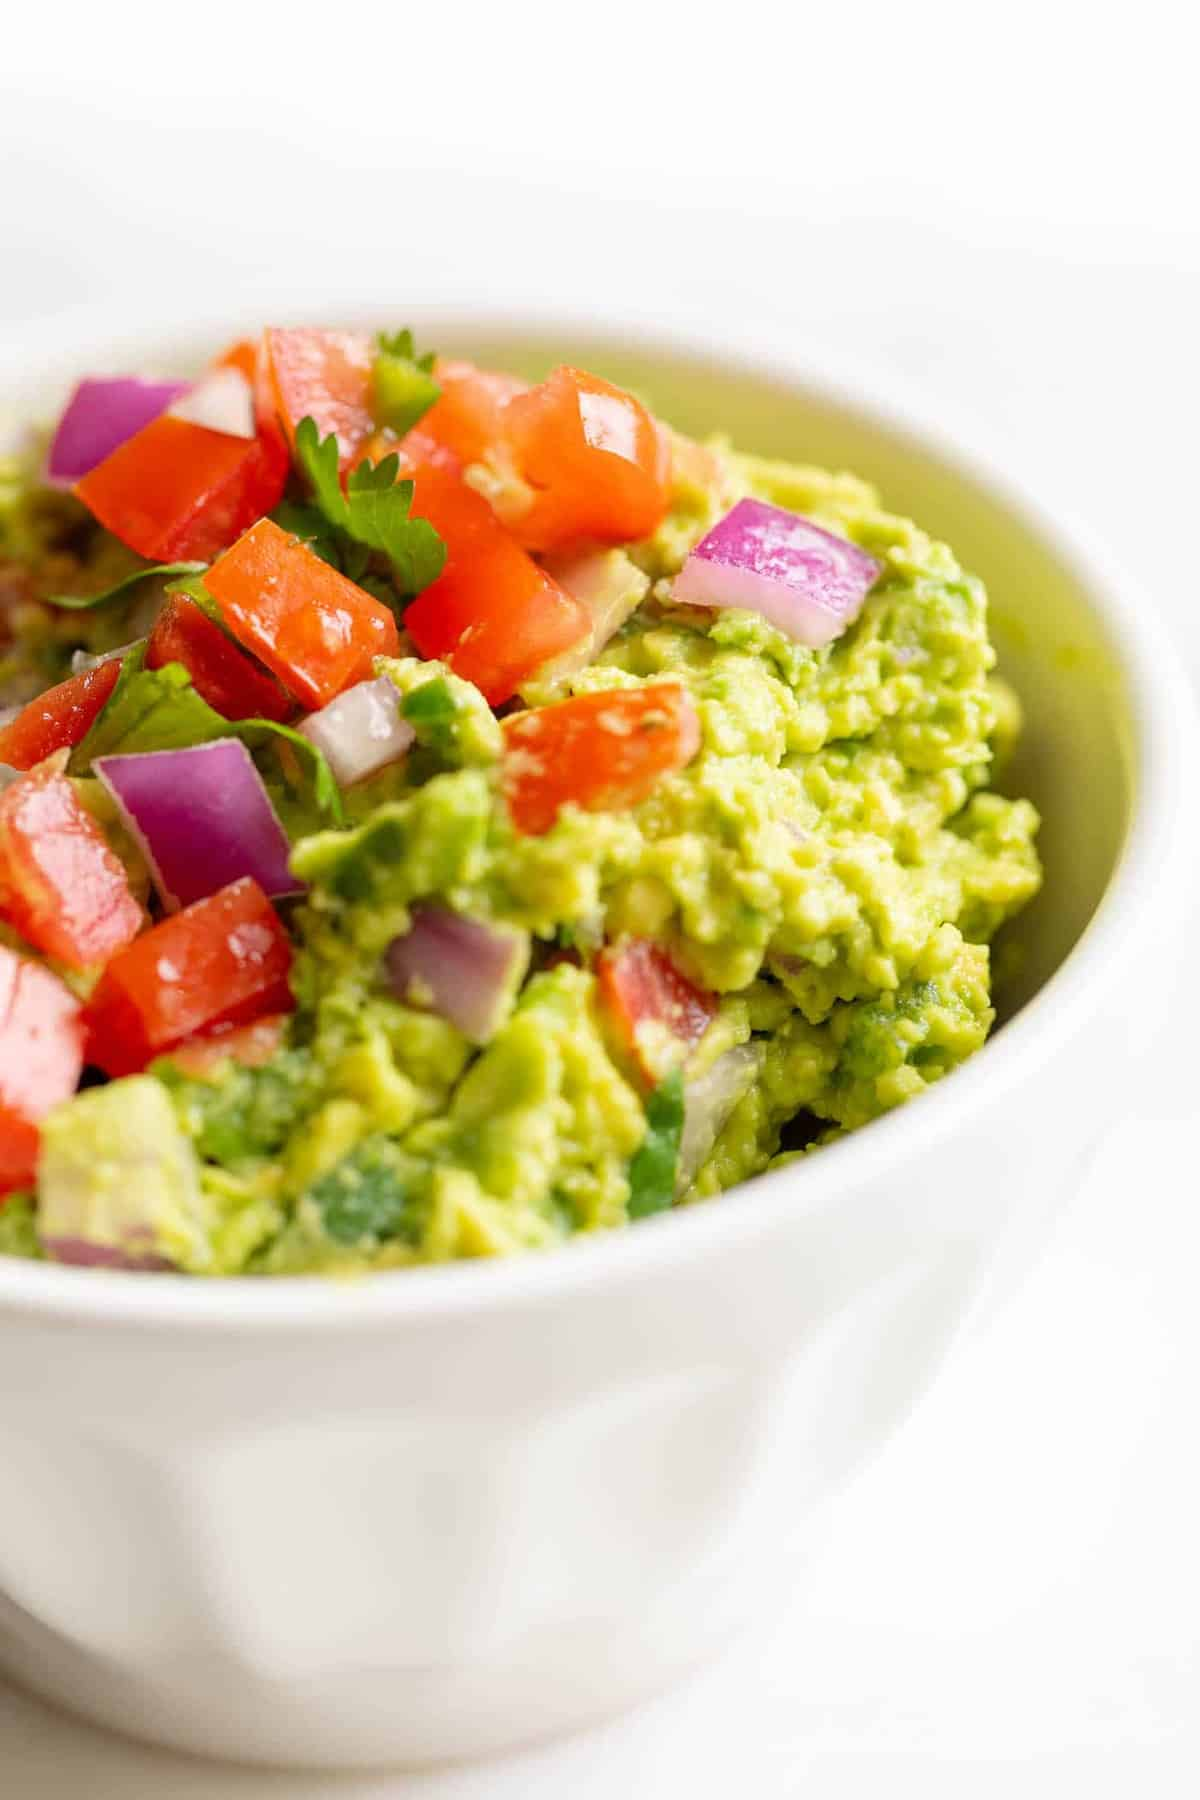 A white bowl on a white surface, filled with a homemade guacamole recipe.